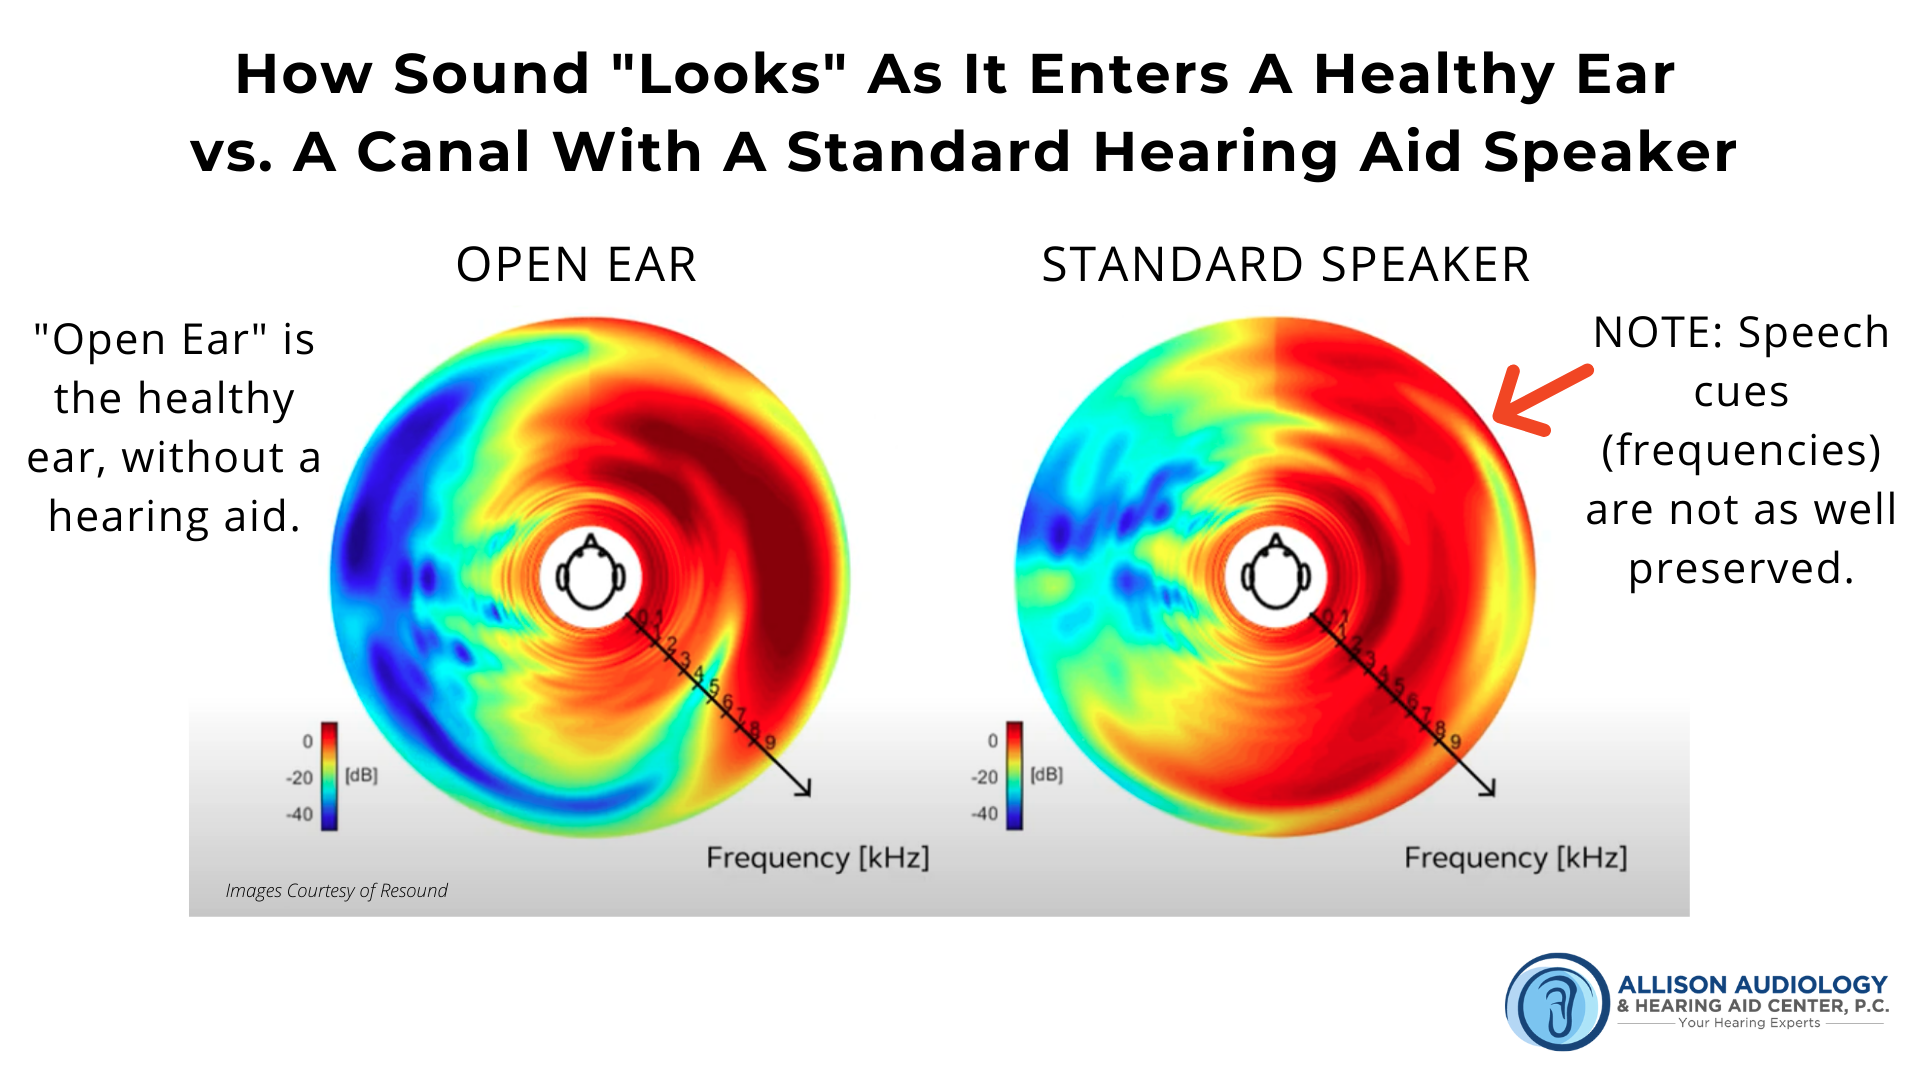 2nd Image of Sound in Healthy Ear vs Standard Speaker B Roll.png